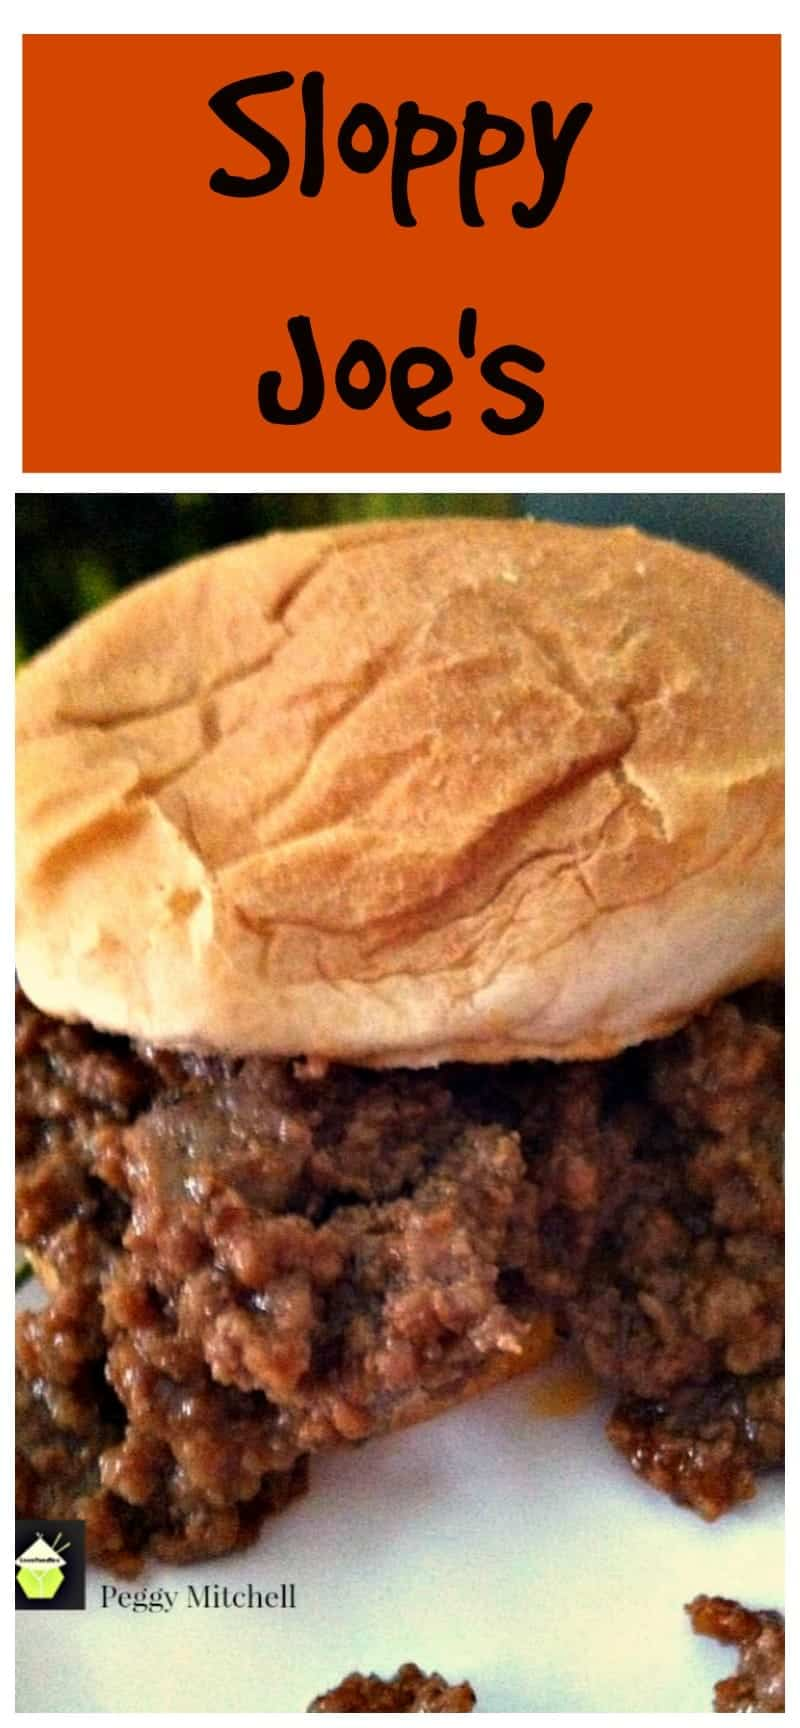 Easy Home Made Sloppy Joe's from scratch. Great flavors and always popular!